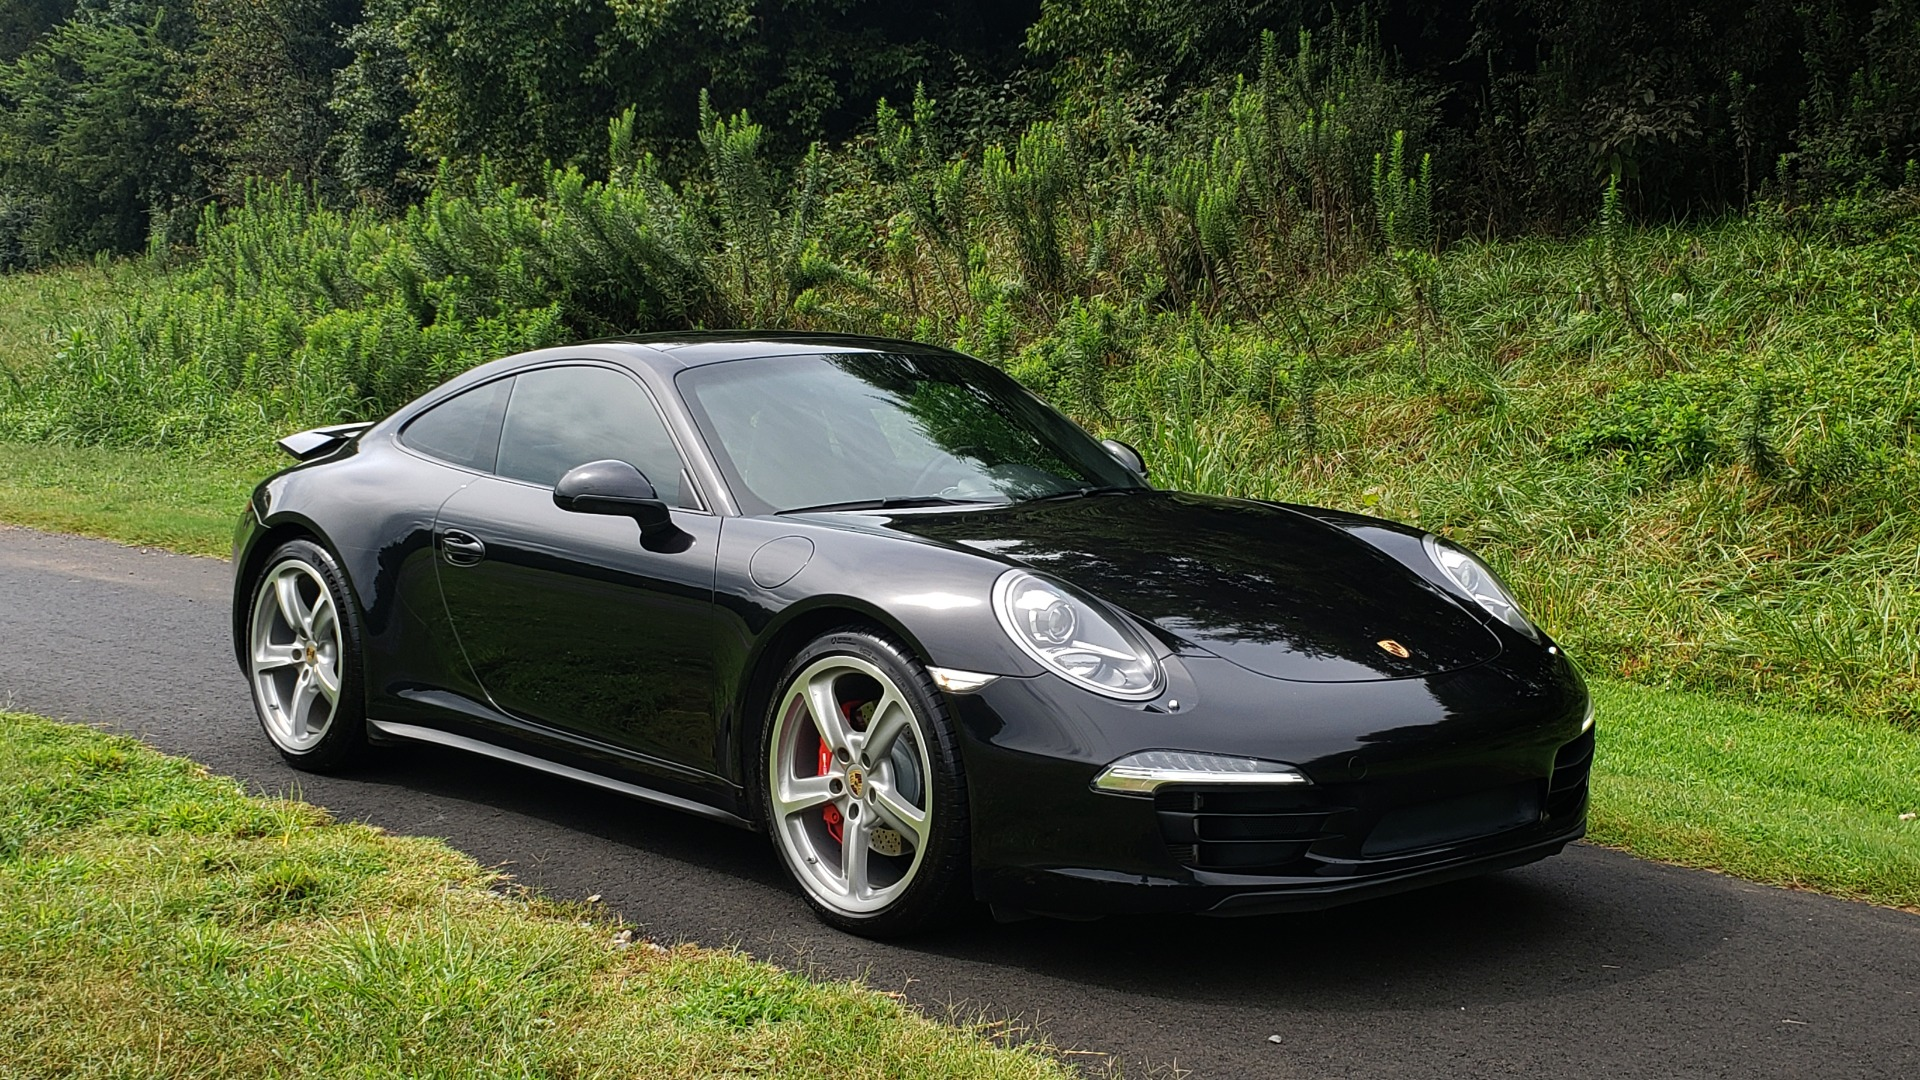 Used 2014 Porsche 911 CARRERA 4S / AWD / 3.8L / PDK / CHRONO / NAV / BOSE / SUNROOF for sale Sold at Formula Imports in Charlotte NC 28227 7